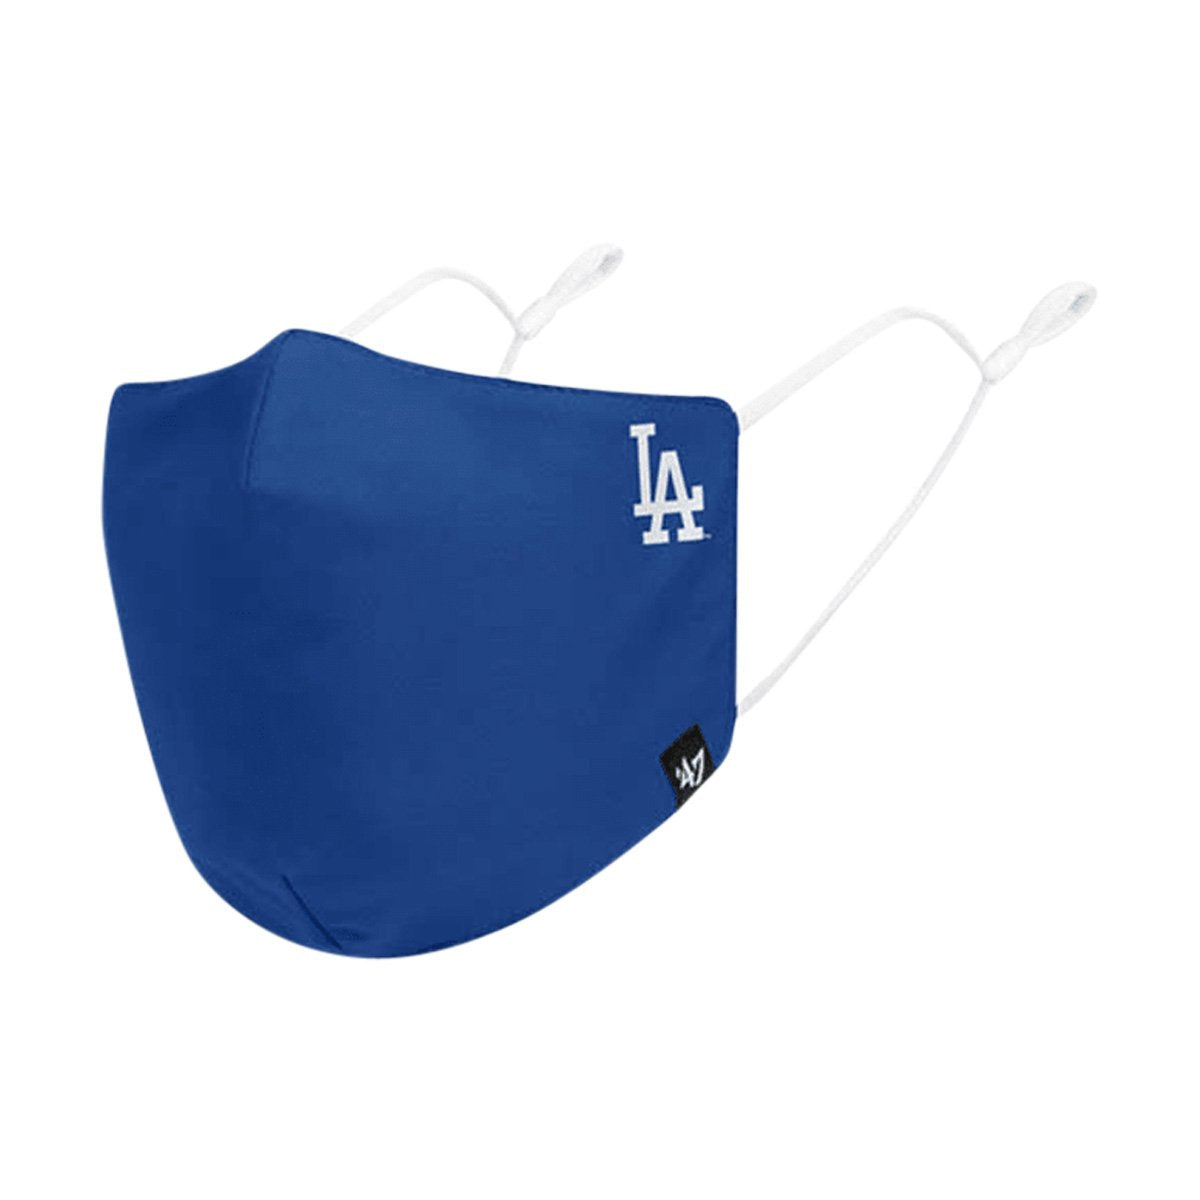 Los Angeles Dodgers Royal Core 47 Face Mask - OSFA